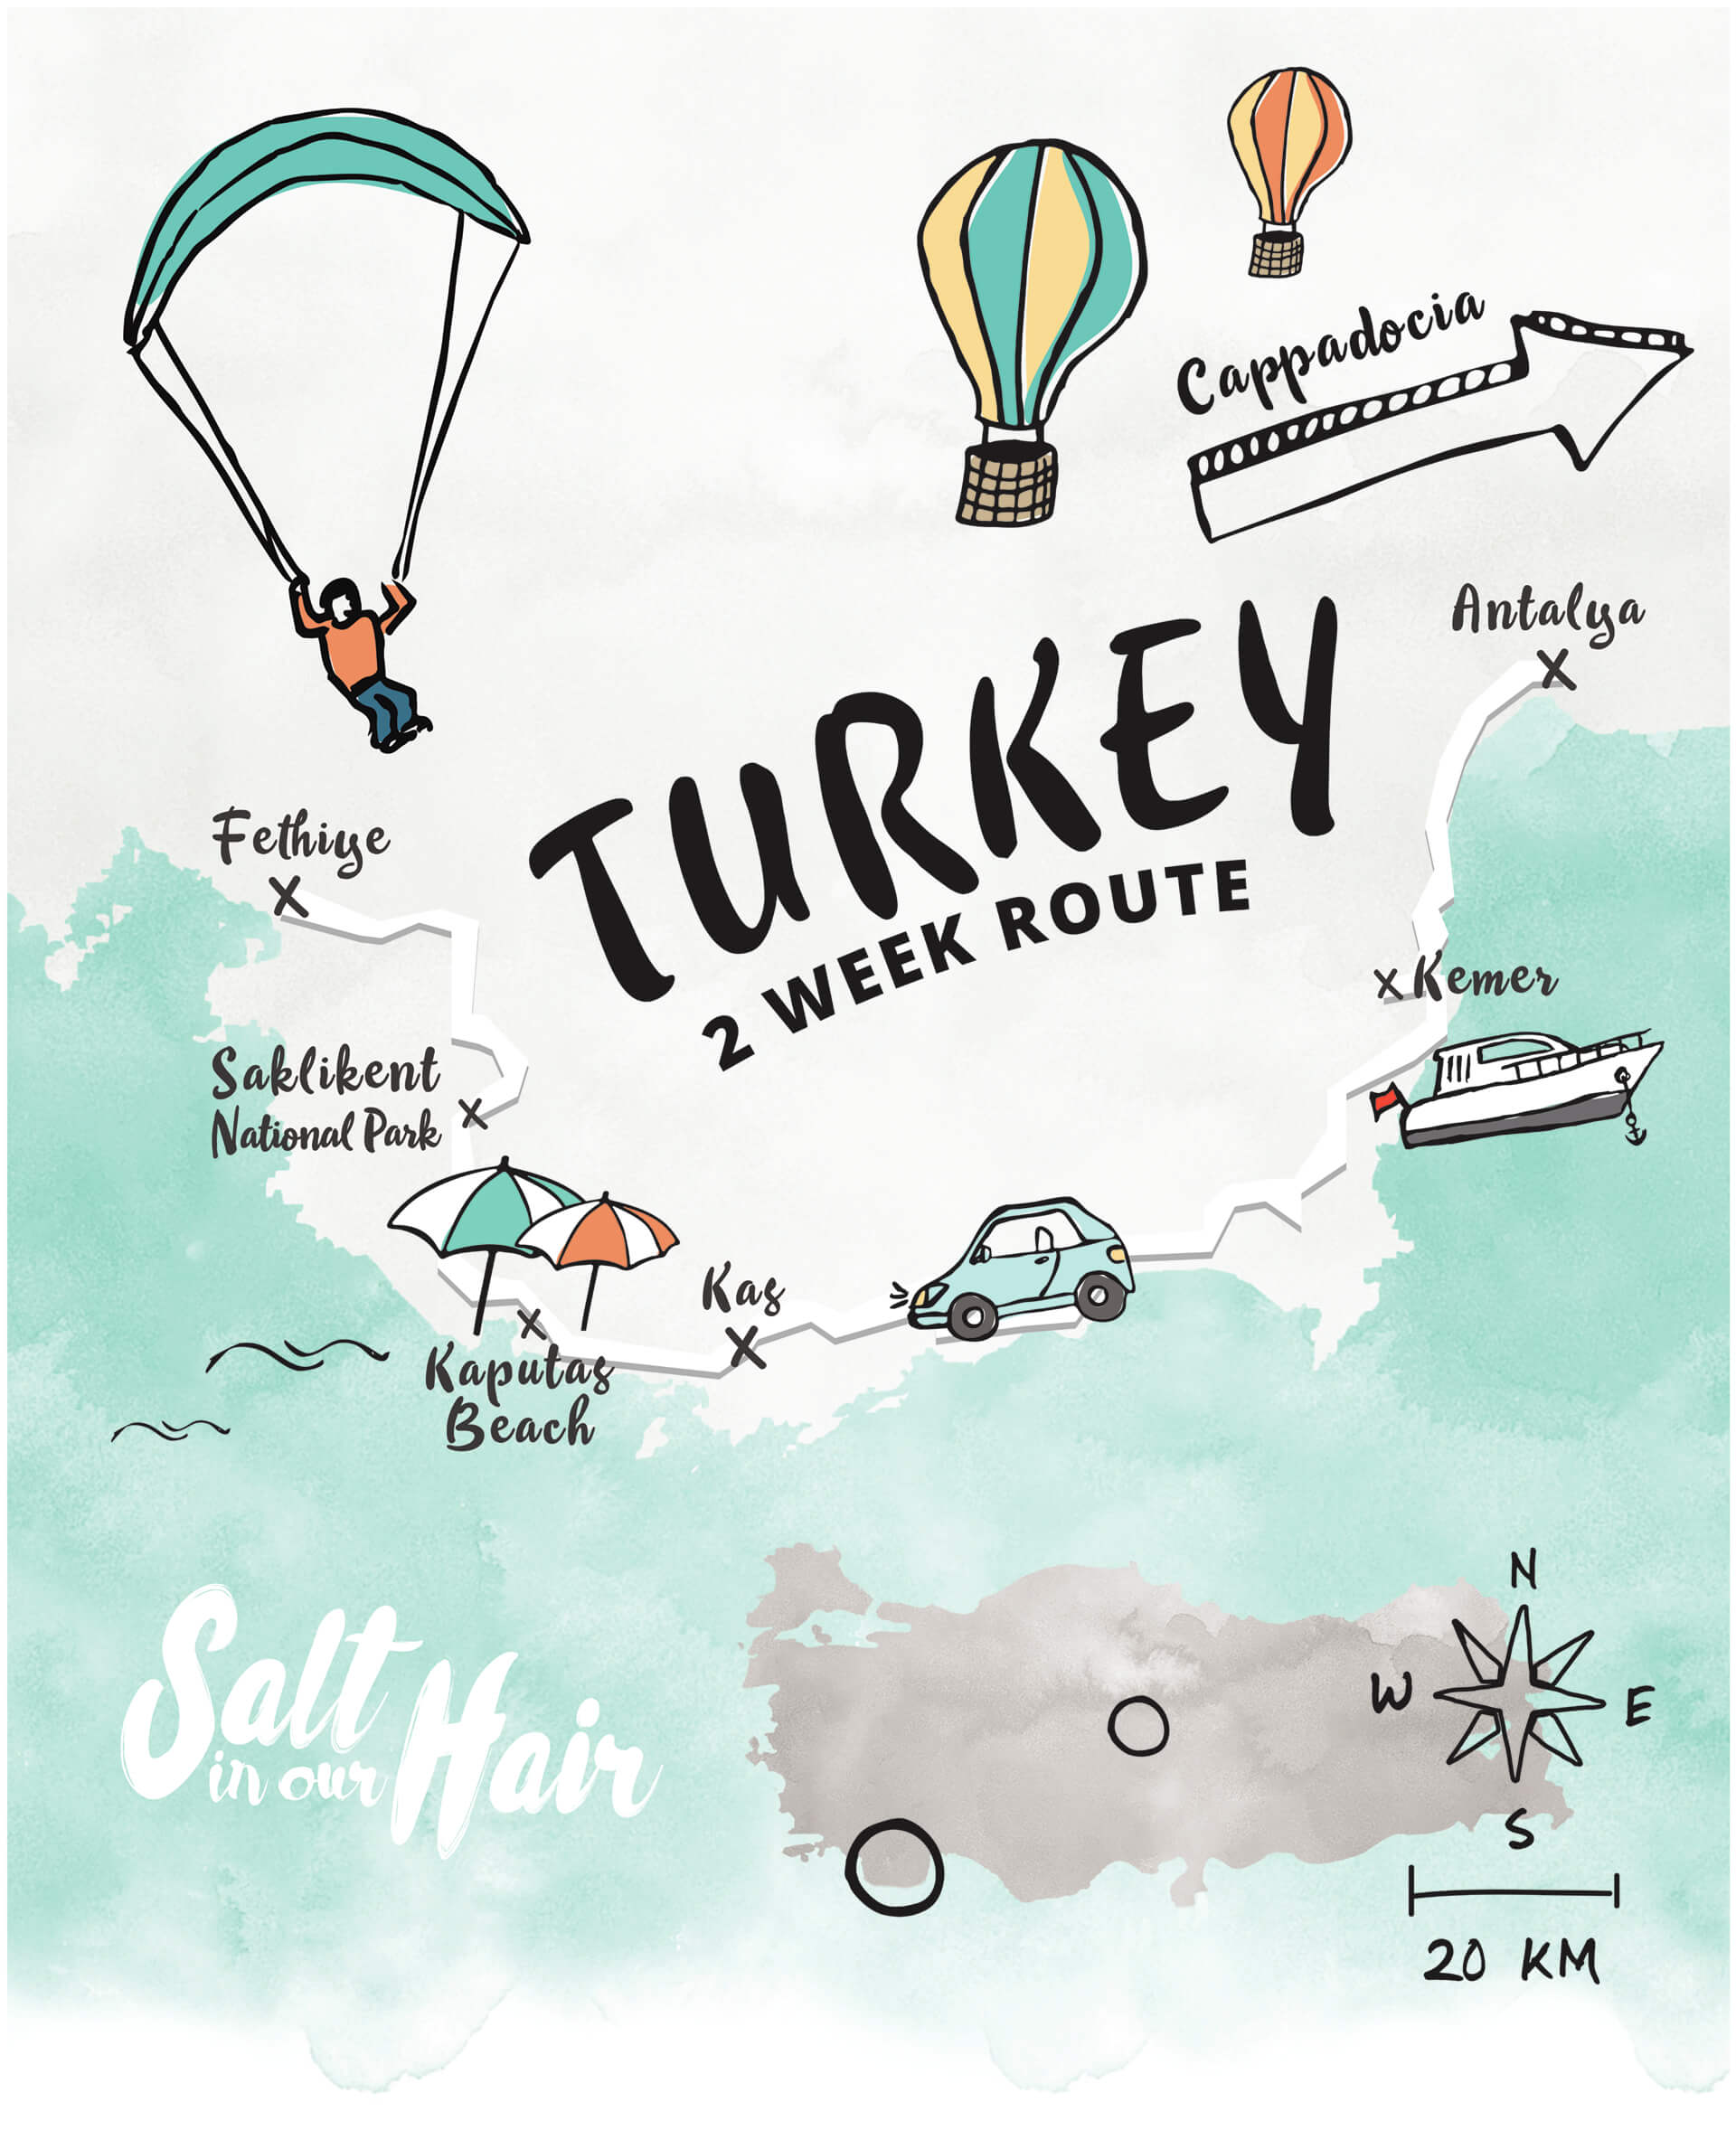 turkey 2 week route guide map